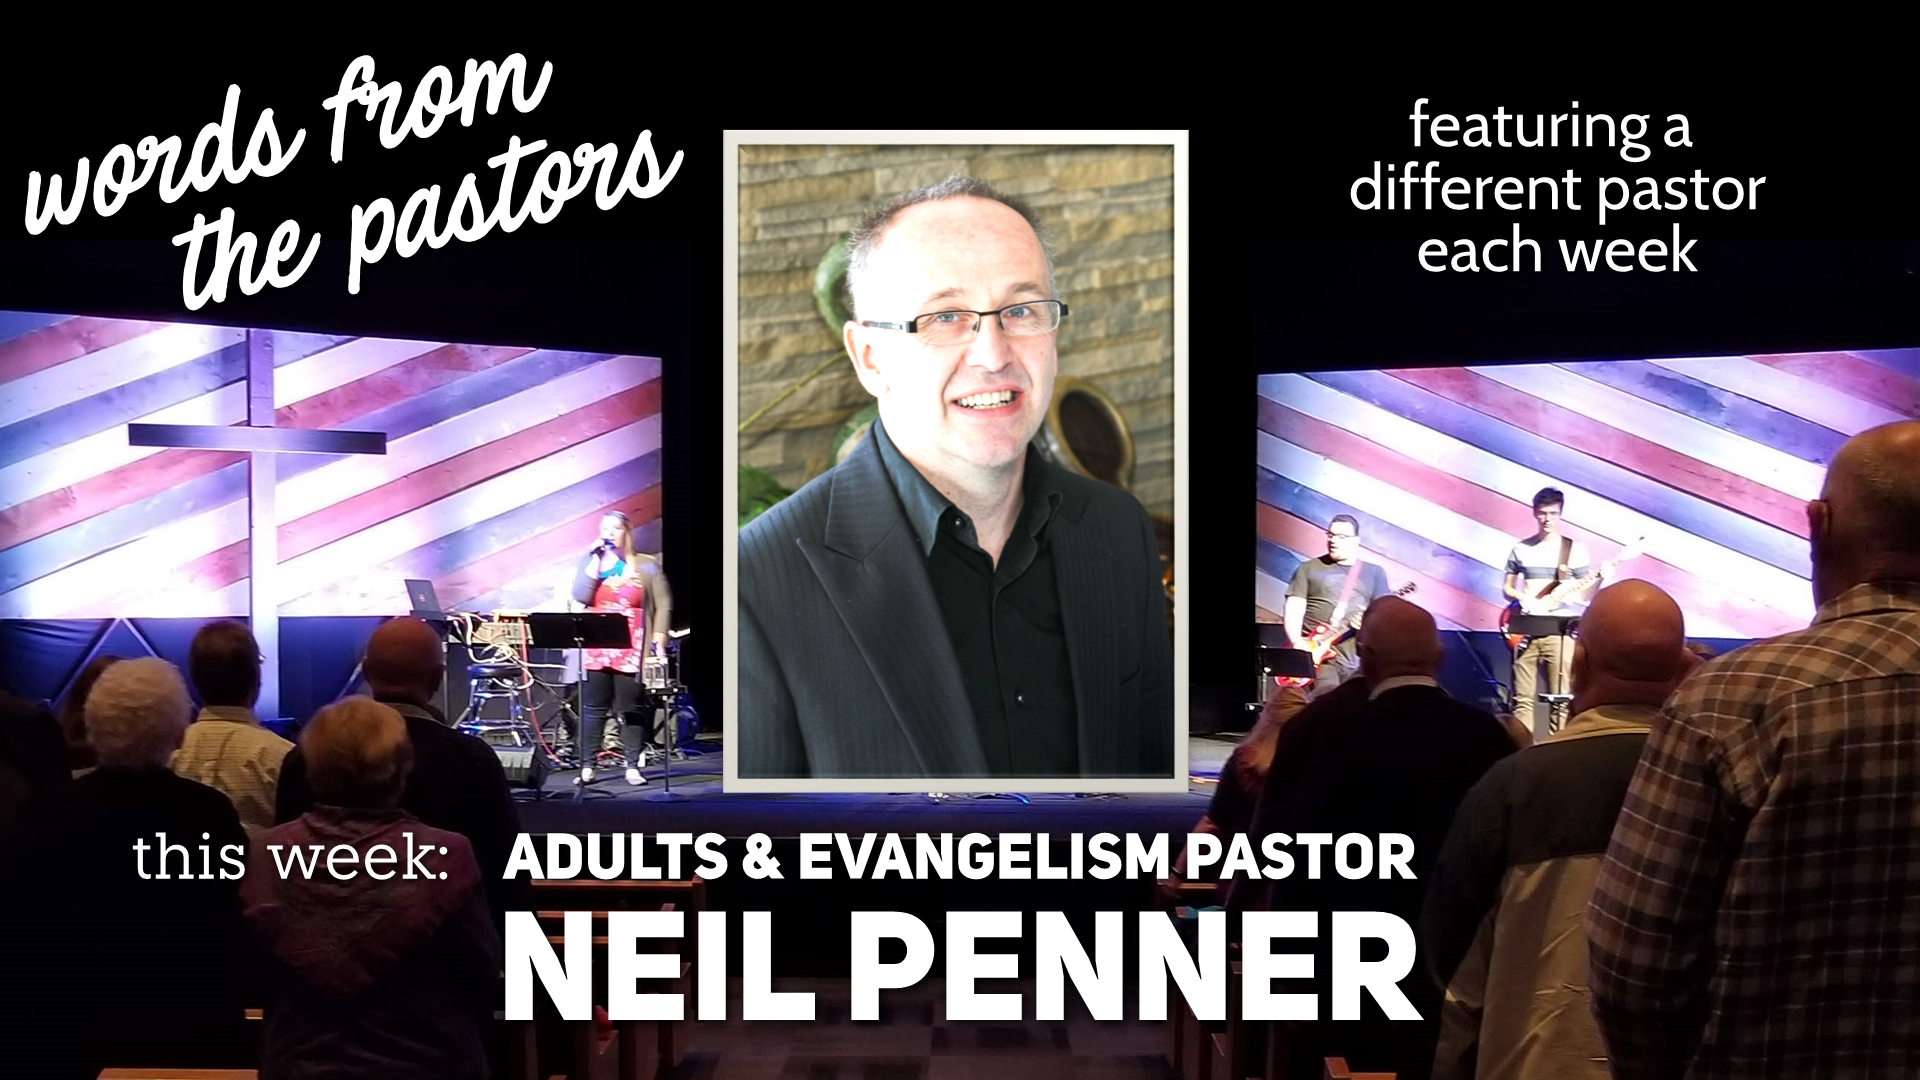 words from the pastors Jan 25 Neil.png